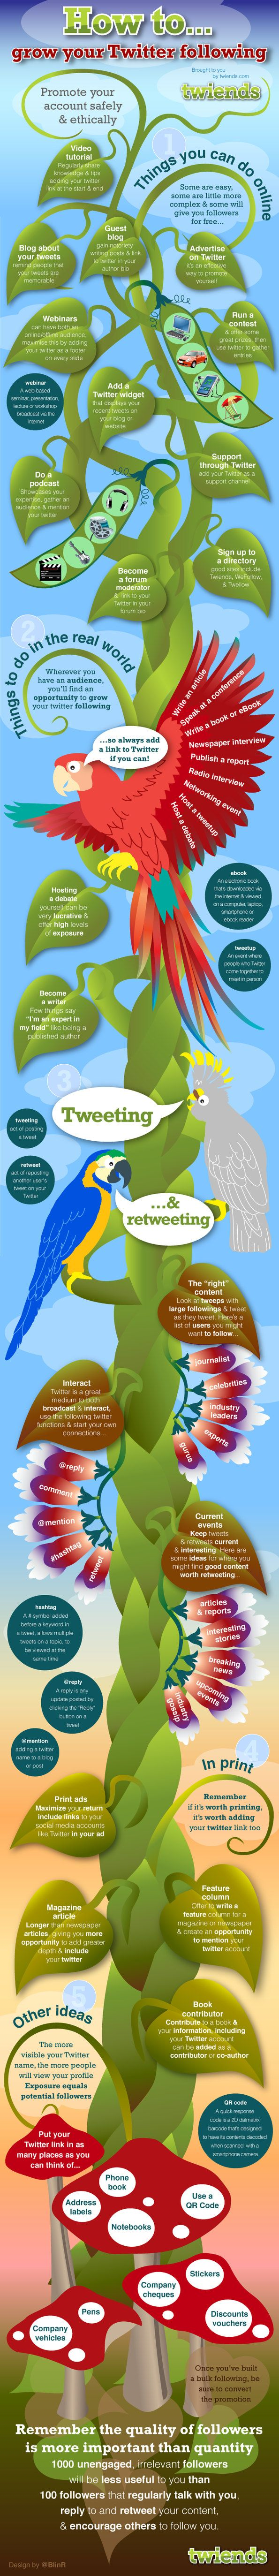 How to Get More Followers on Twitter [INFOGRAPHIC]